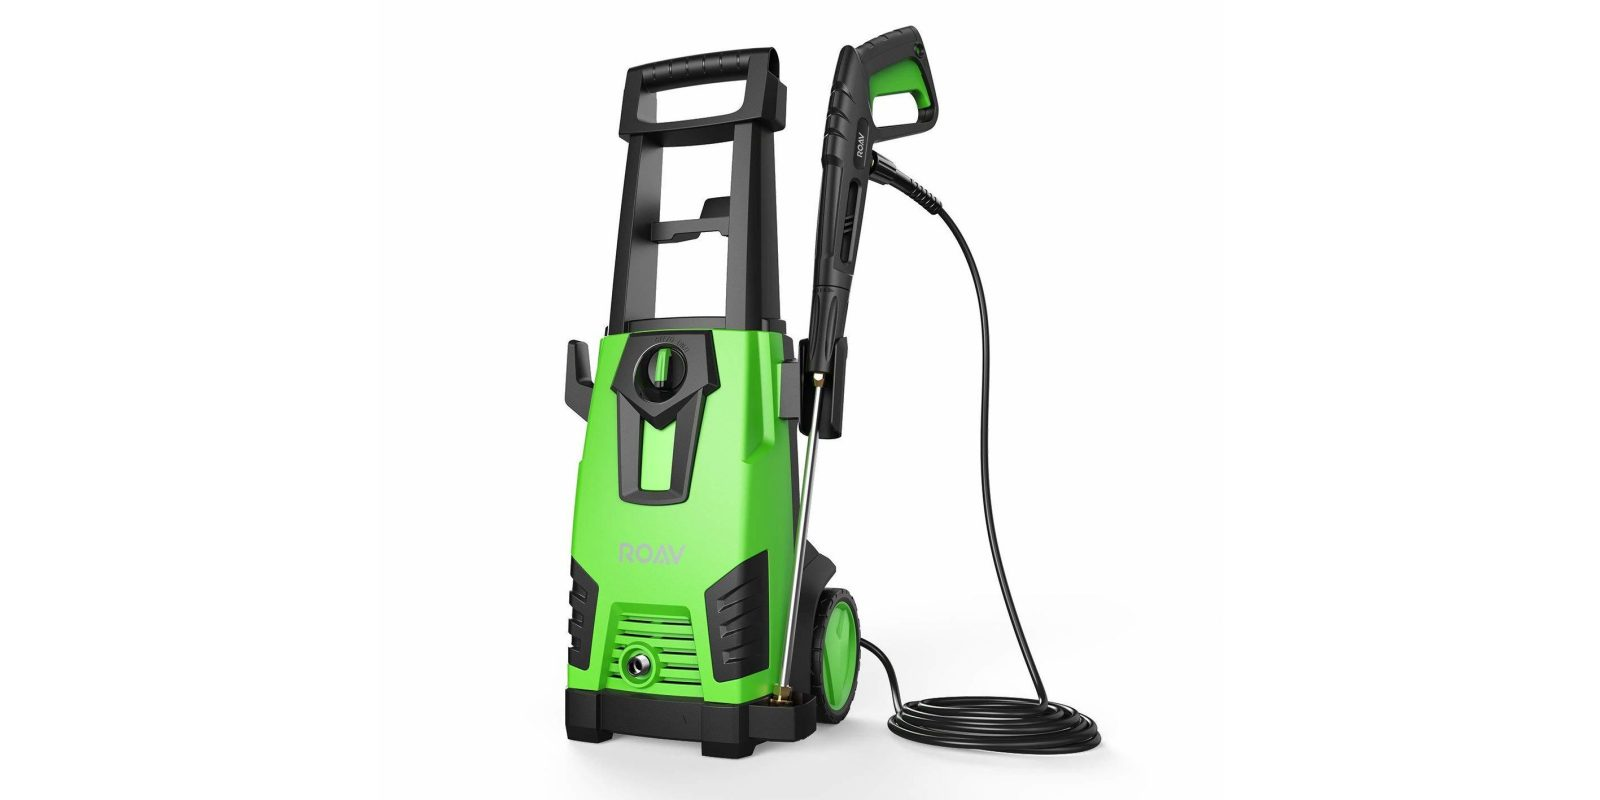 Anker electric pressure washers, leaf blowers, more on sale from $105